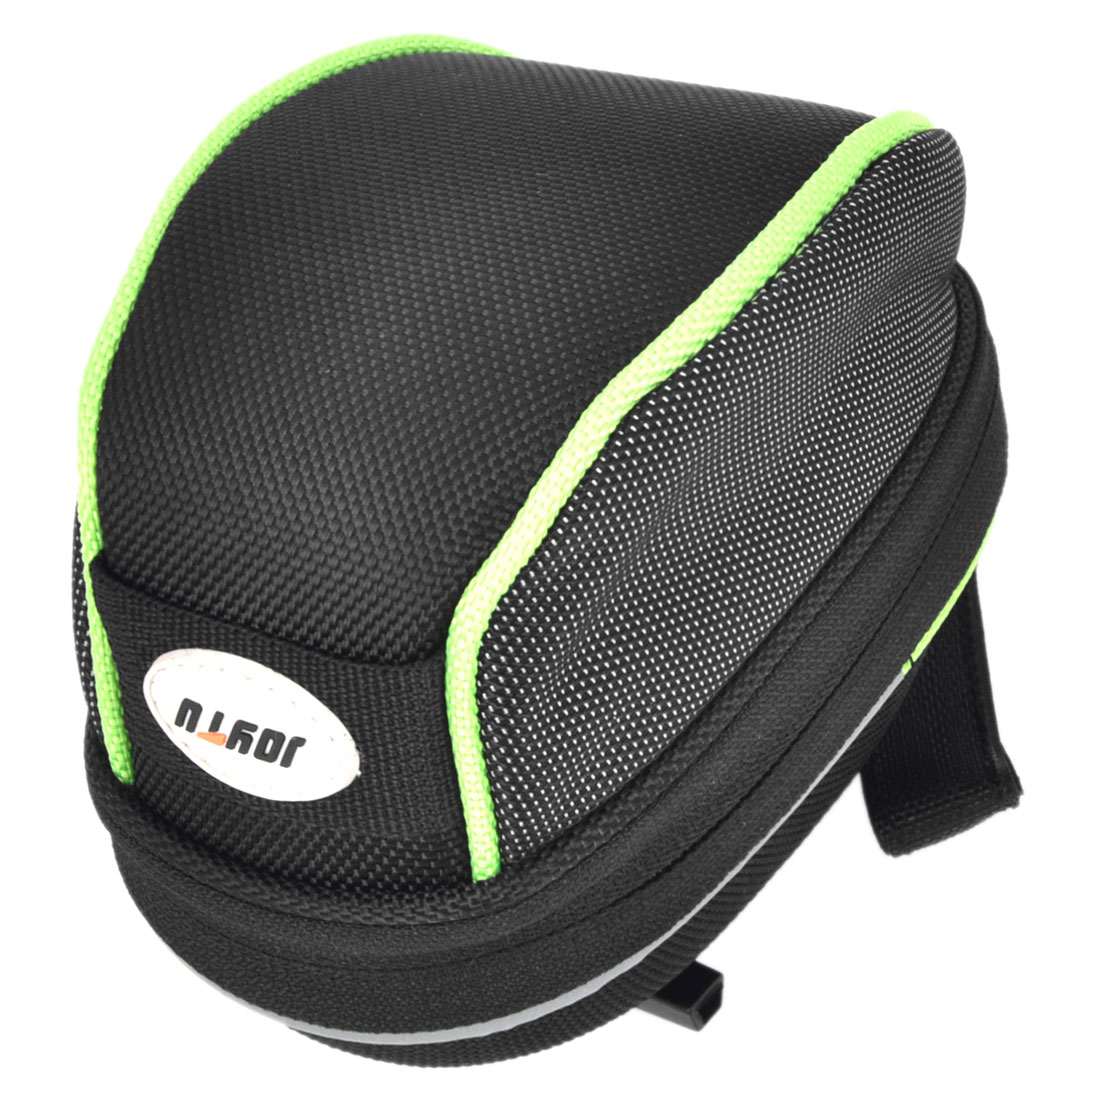 Mountain Bike Black Green Nylon Saddle Pannier Seat Rear Zipper Bag Pouch